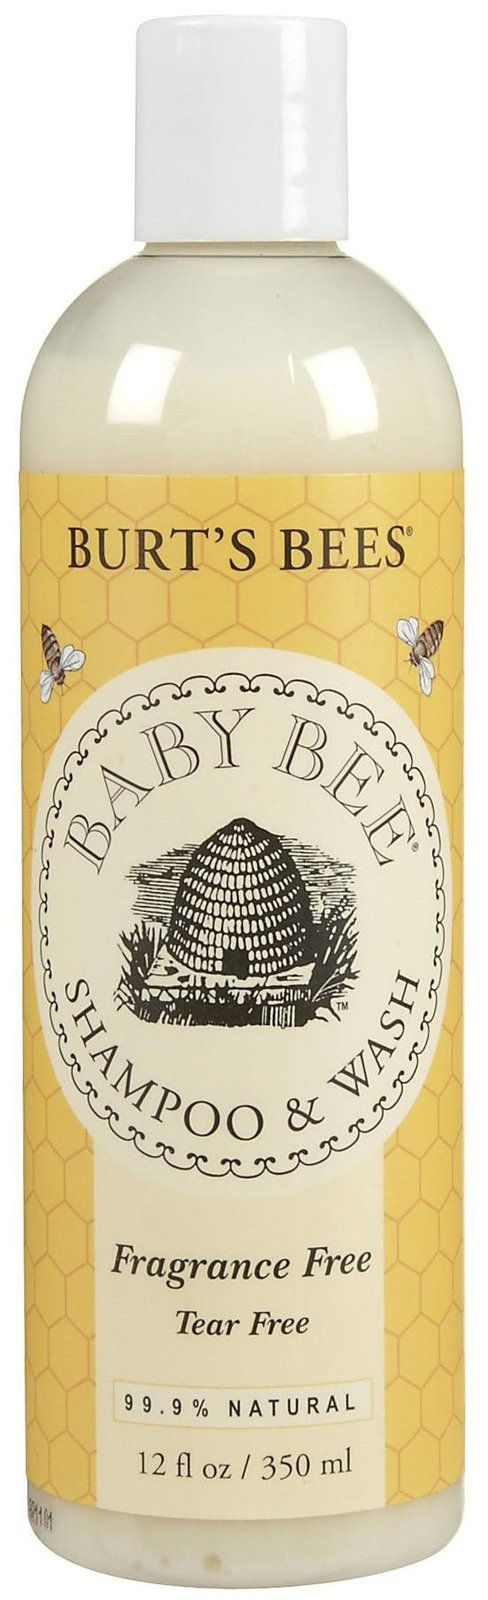 Burt's Bees Baby Bee Fragrance-Free Shampoo & Wash - 12 oz - Free Shipping....favorite shampoo and body wash!!  Does not dry out their scalp.